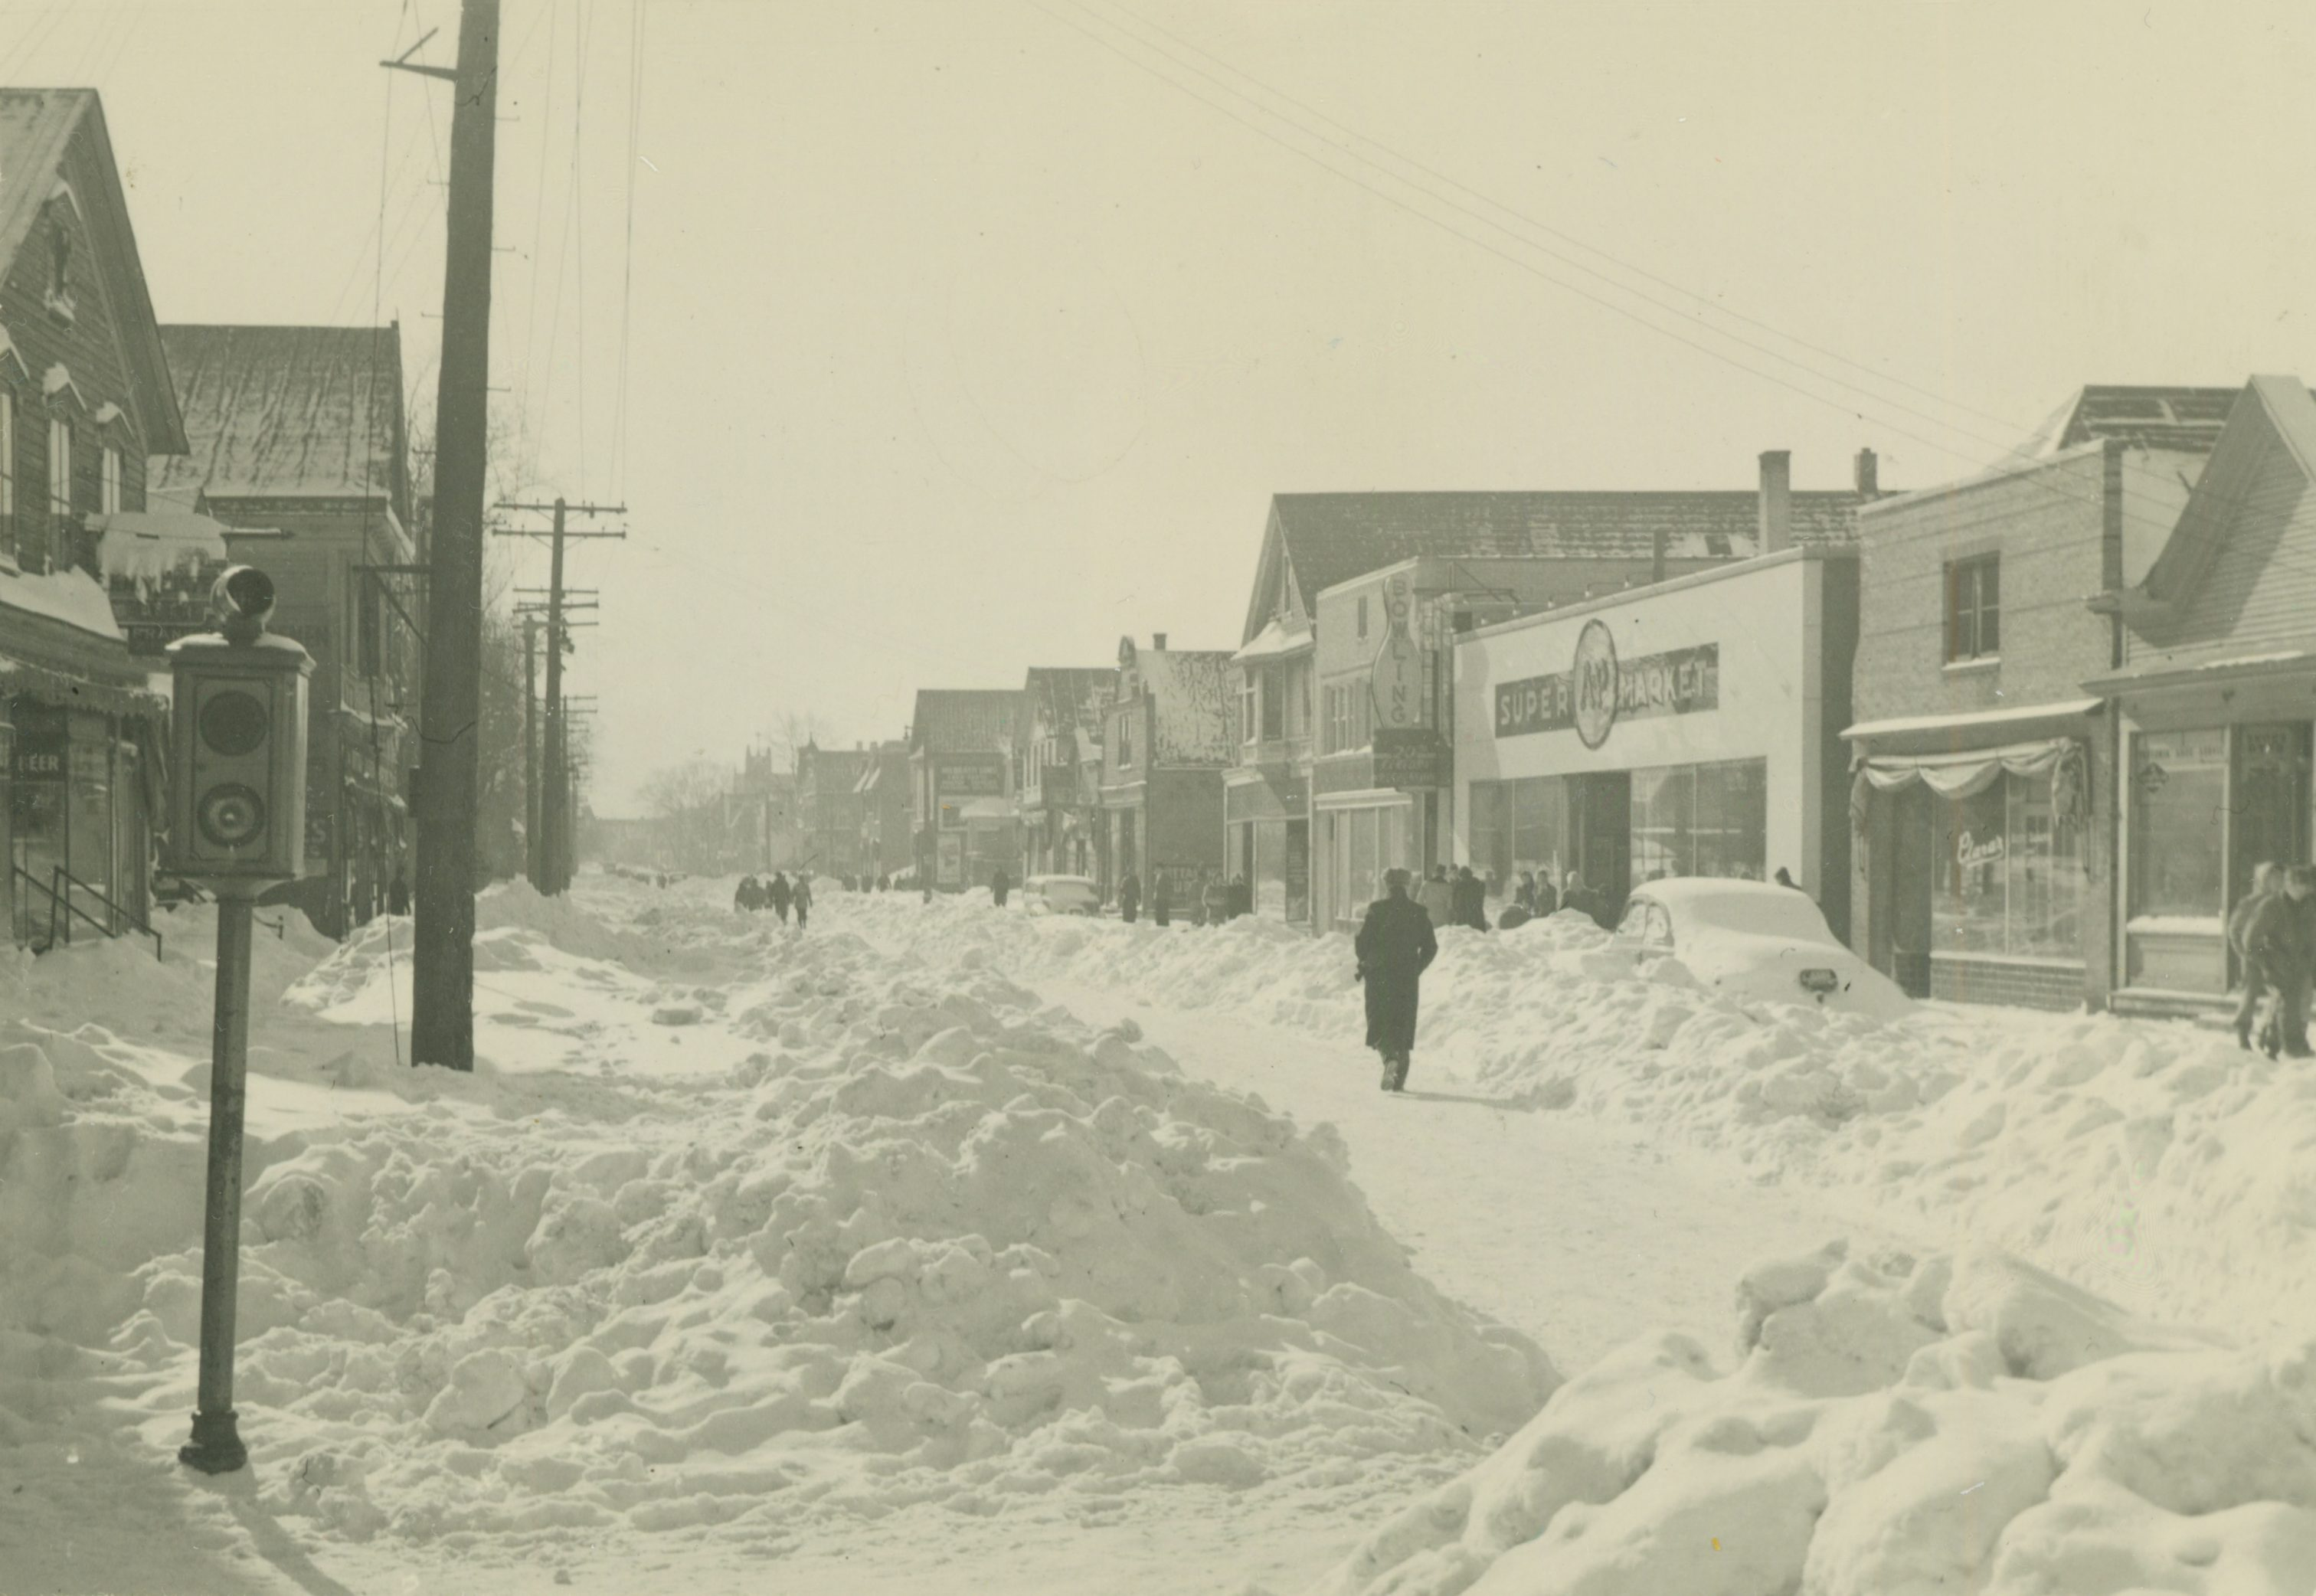 In 1947, a January blizzard brought sixteen inches of snowfall to Milwaukee and crippled the city. Pictured here the day after the storm, Teutonia Avenue is only partially plowed and snow drifts are piled high along the sidewalks.